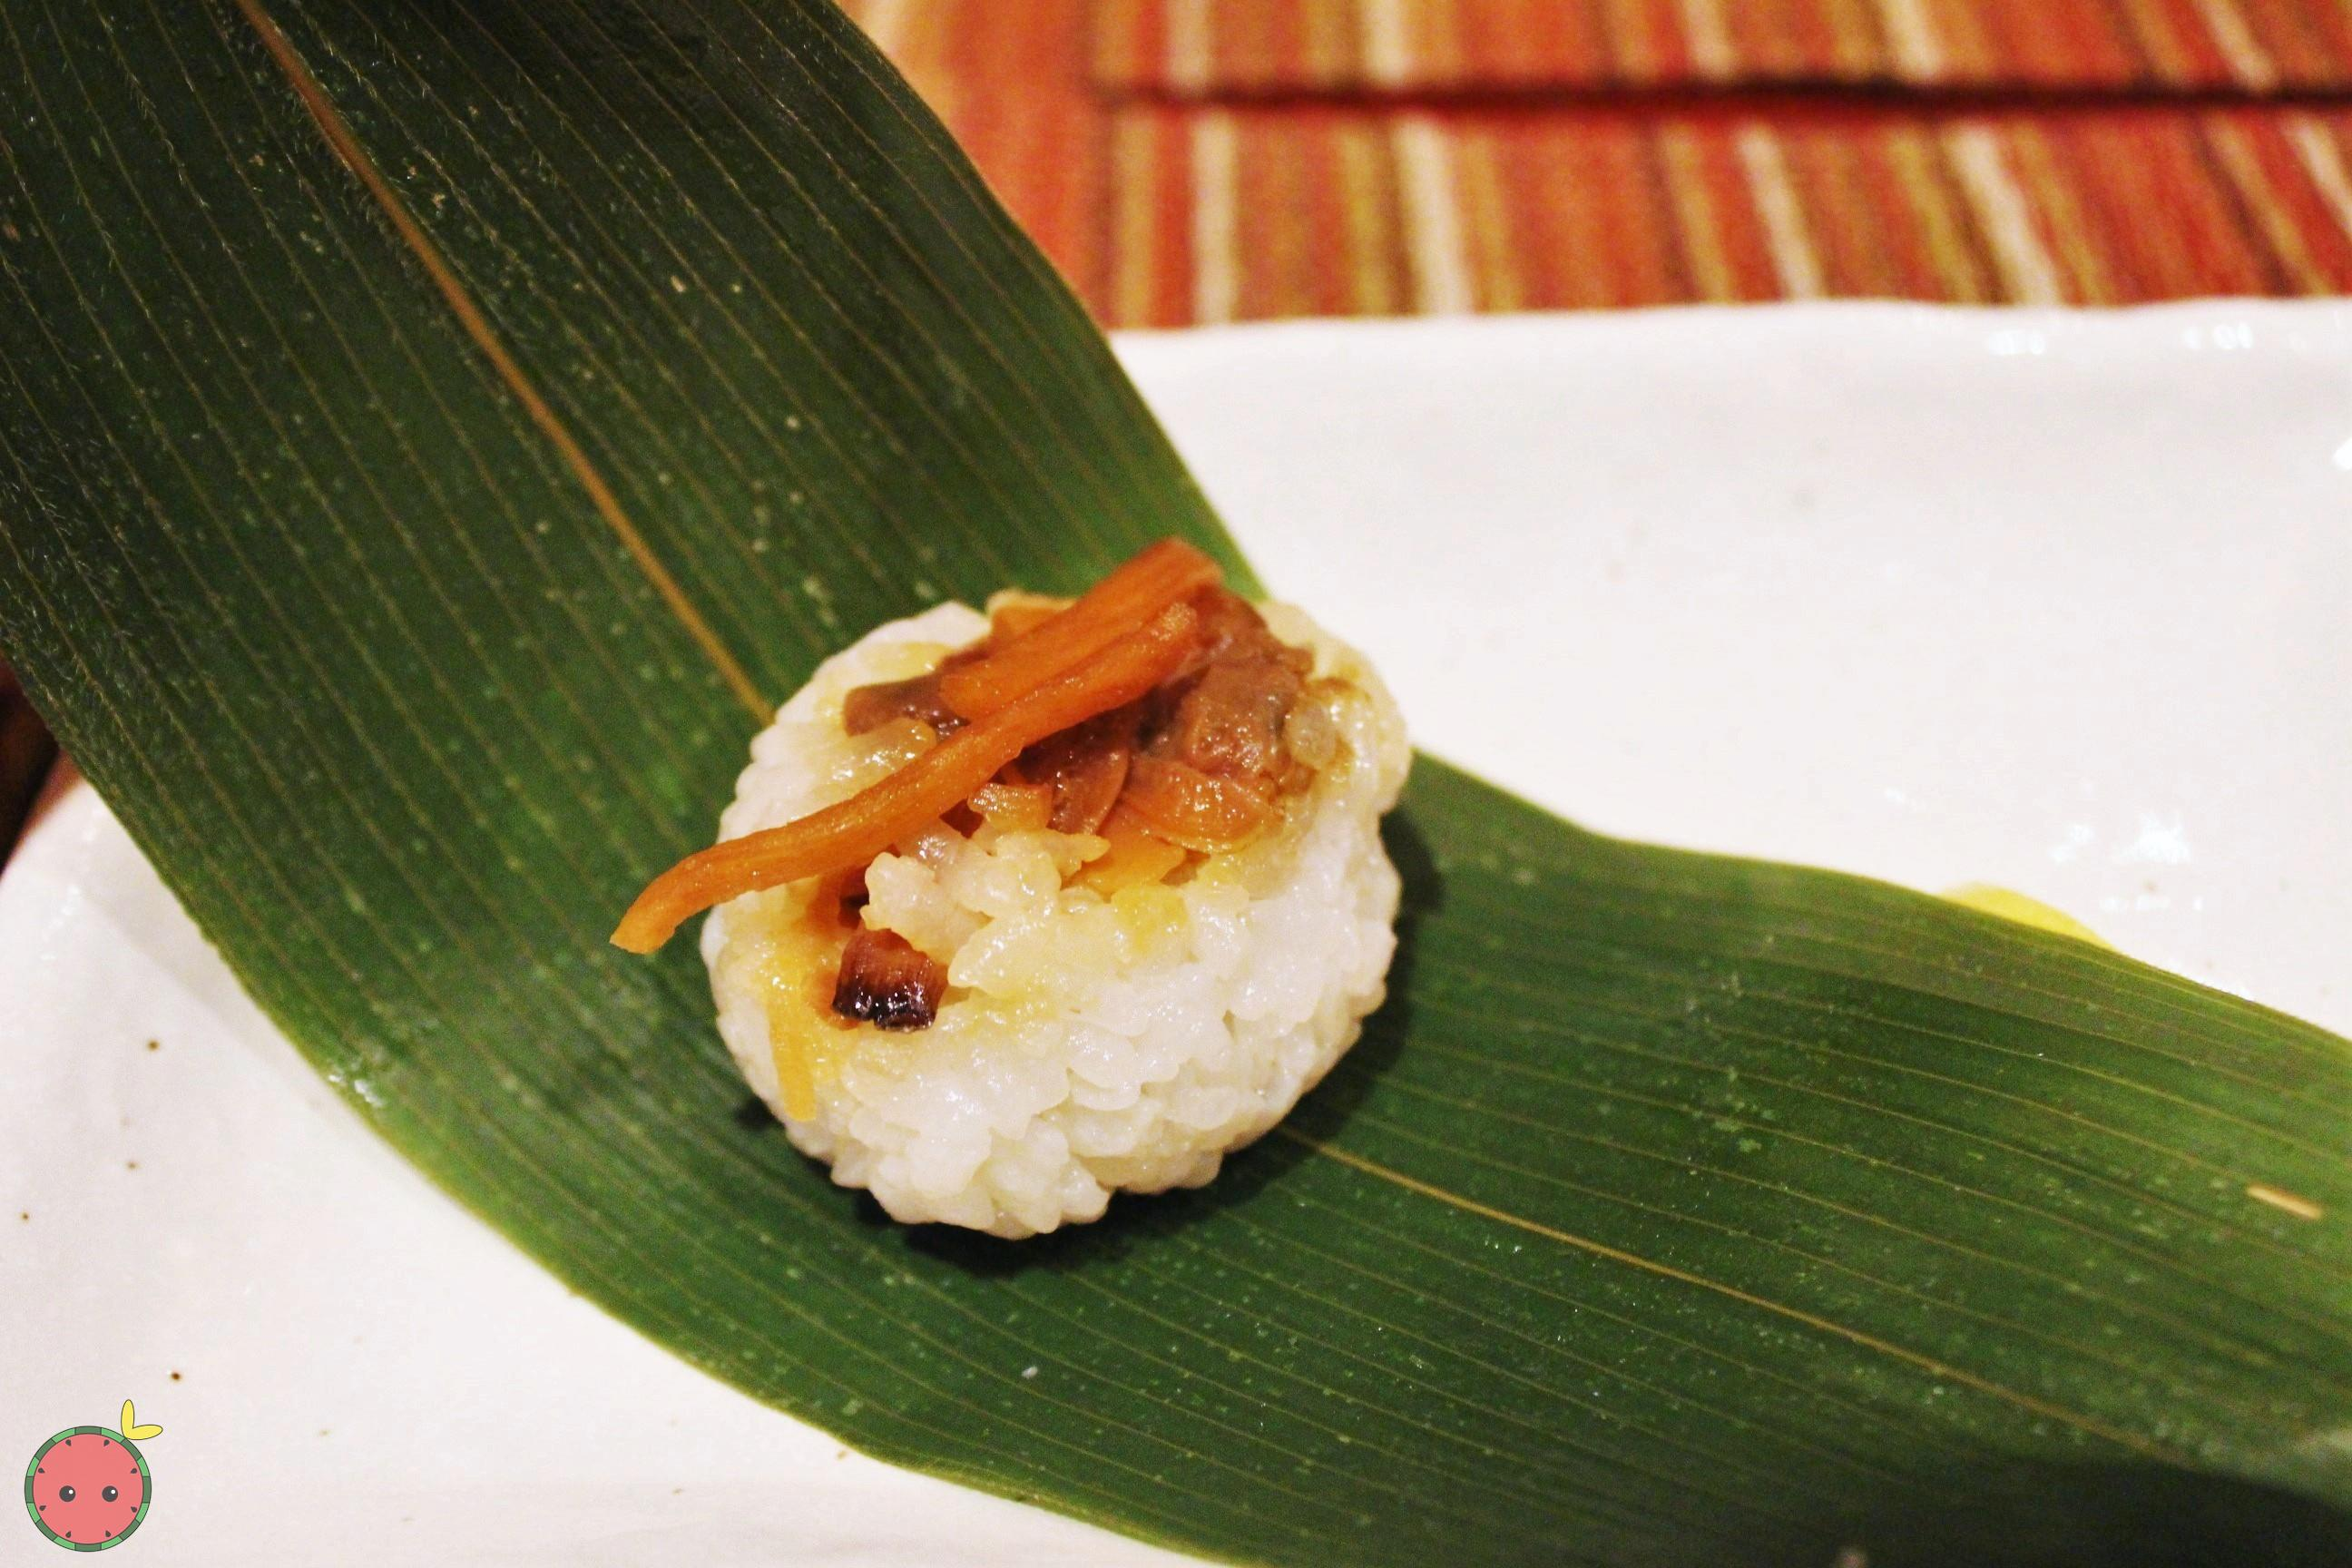 Oshinogi - Braised Asari Little Neck clam sushi